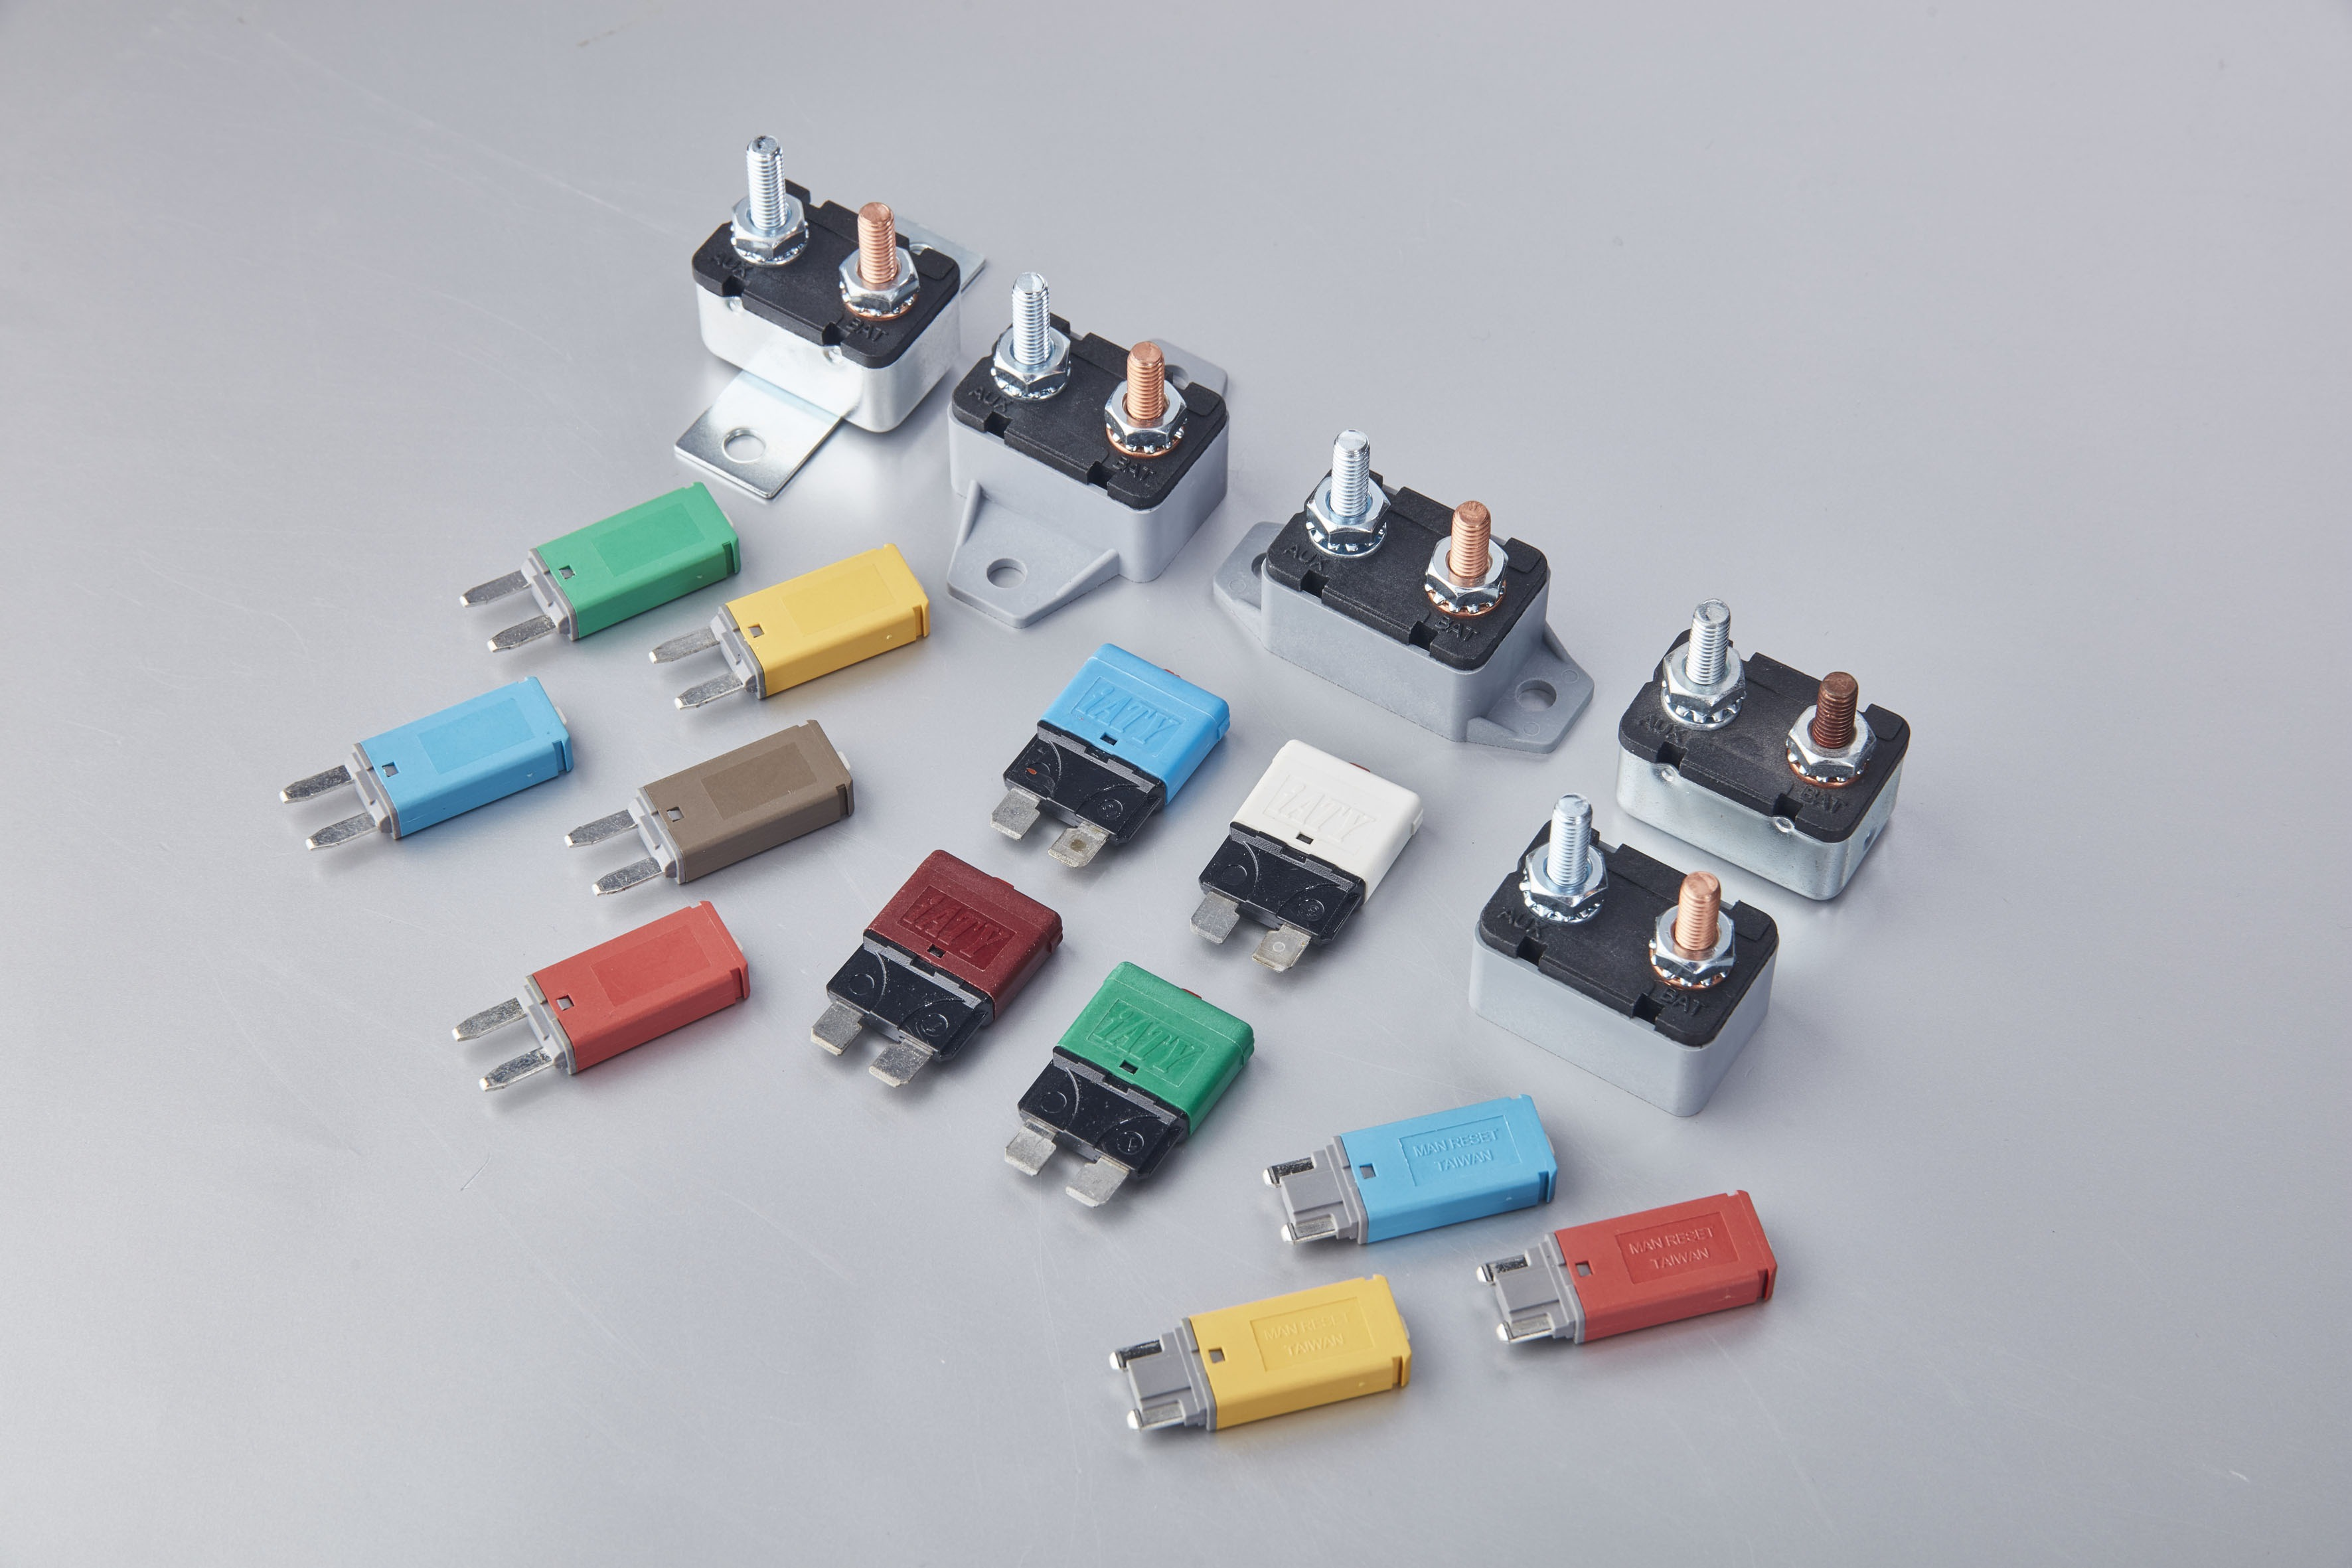 Automobile Circuit Breaker for Electrical Parts made by CHE YEN INDUSTRIAL CO., LTD. 啟運興業股份有限公司 - MatchSupplier.com